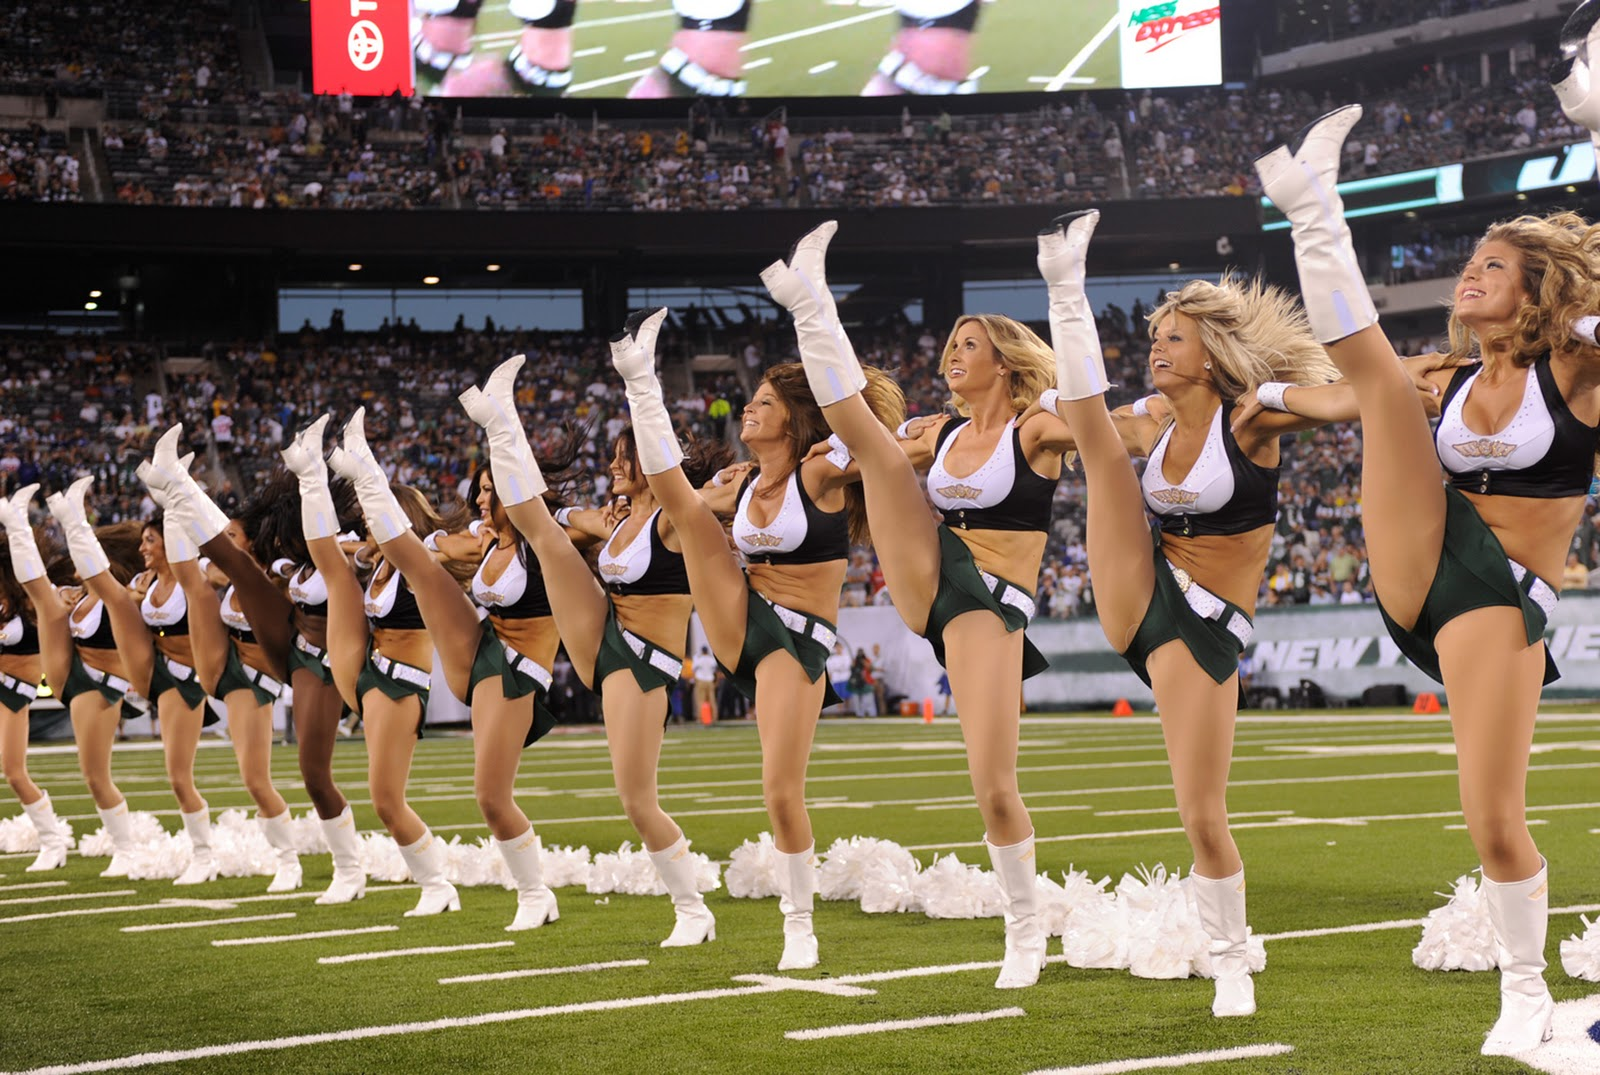 New York Jets Logo Cheerleaders Wallpaper I Celebes